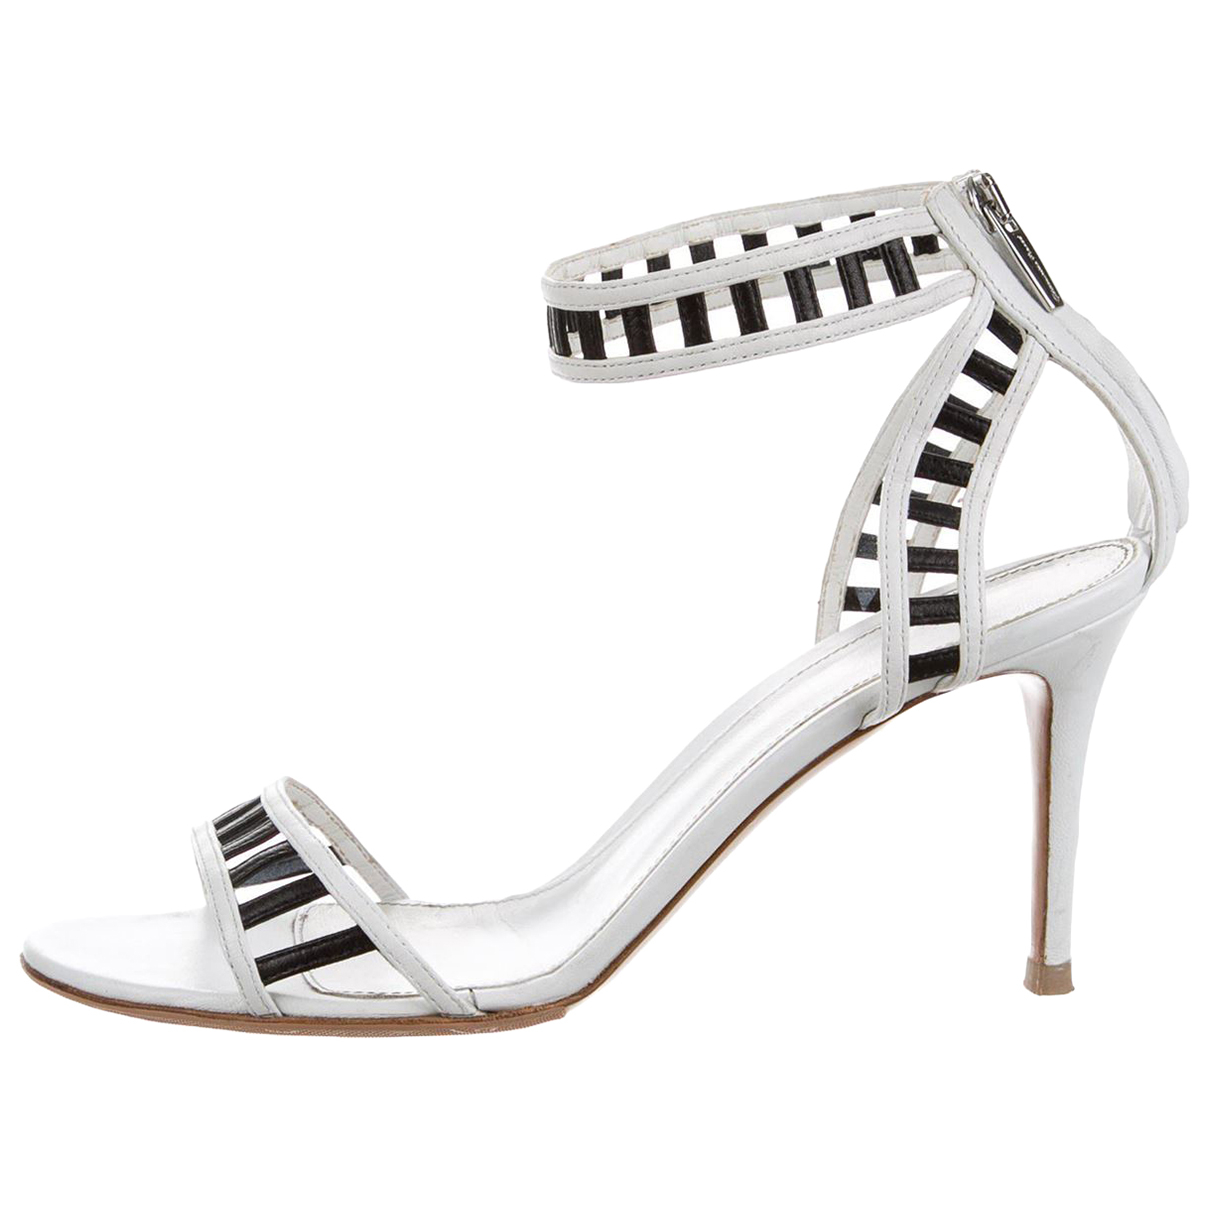 Gianvito Rossi N White Leather Heels for Women 38 EU